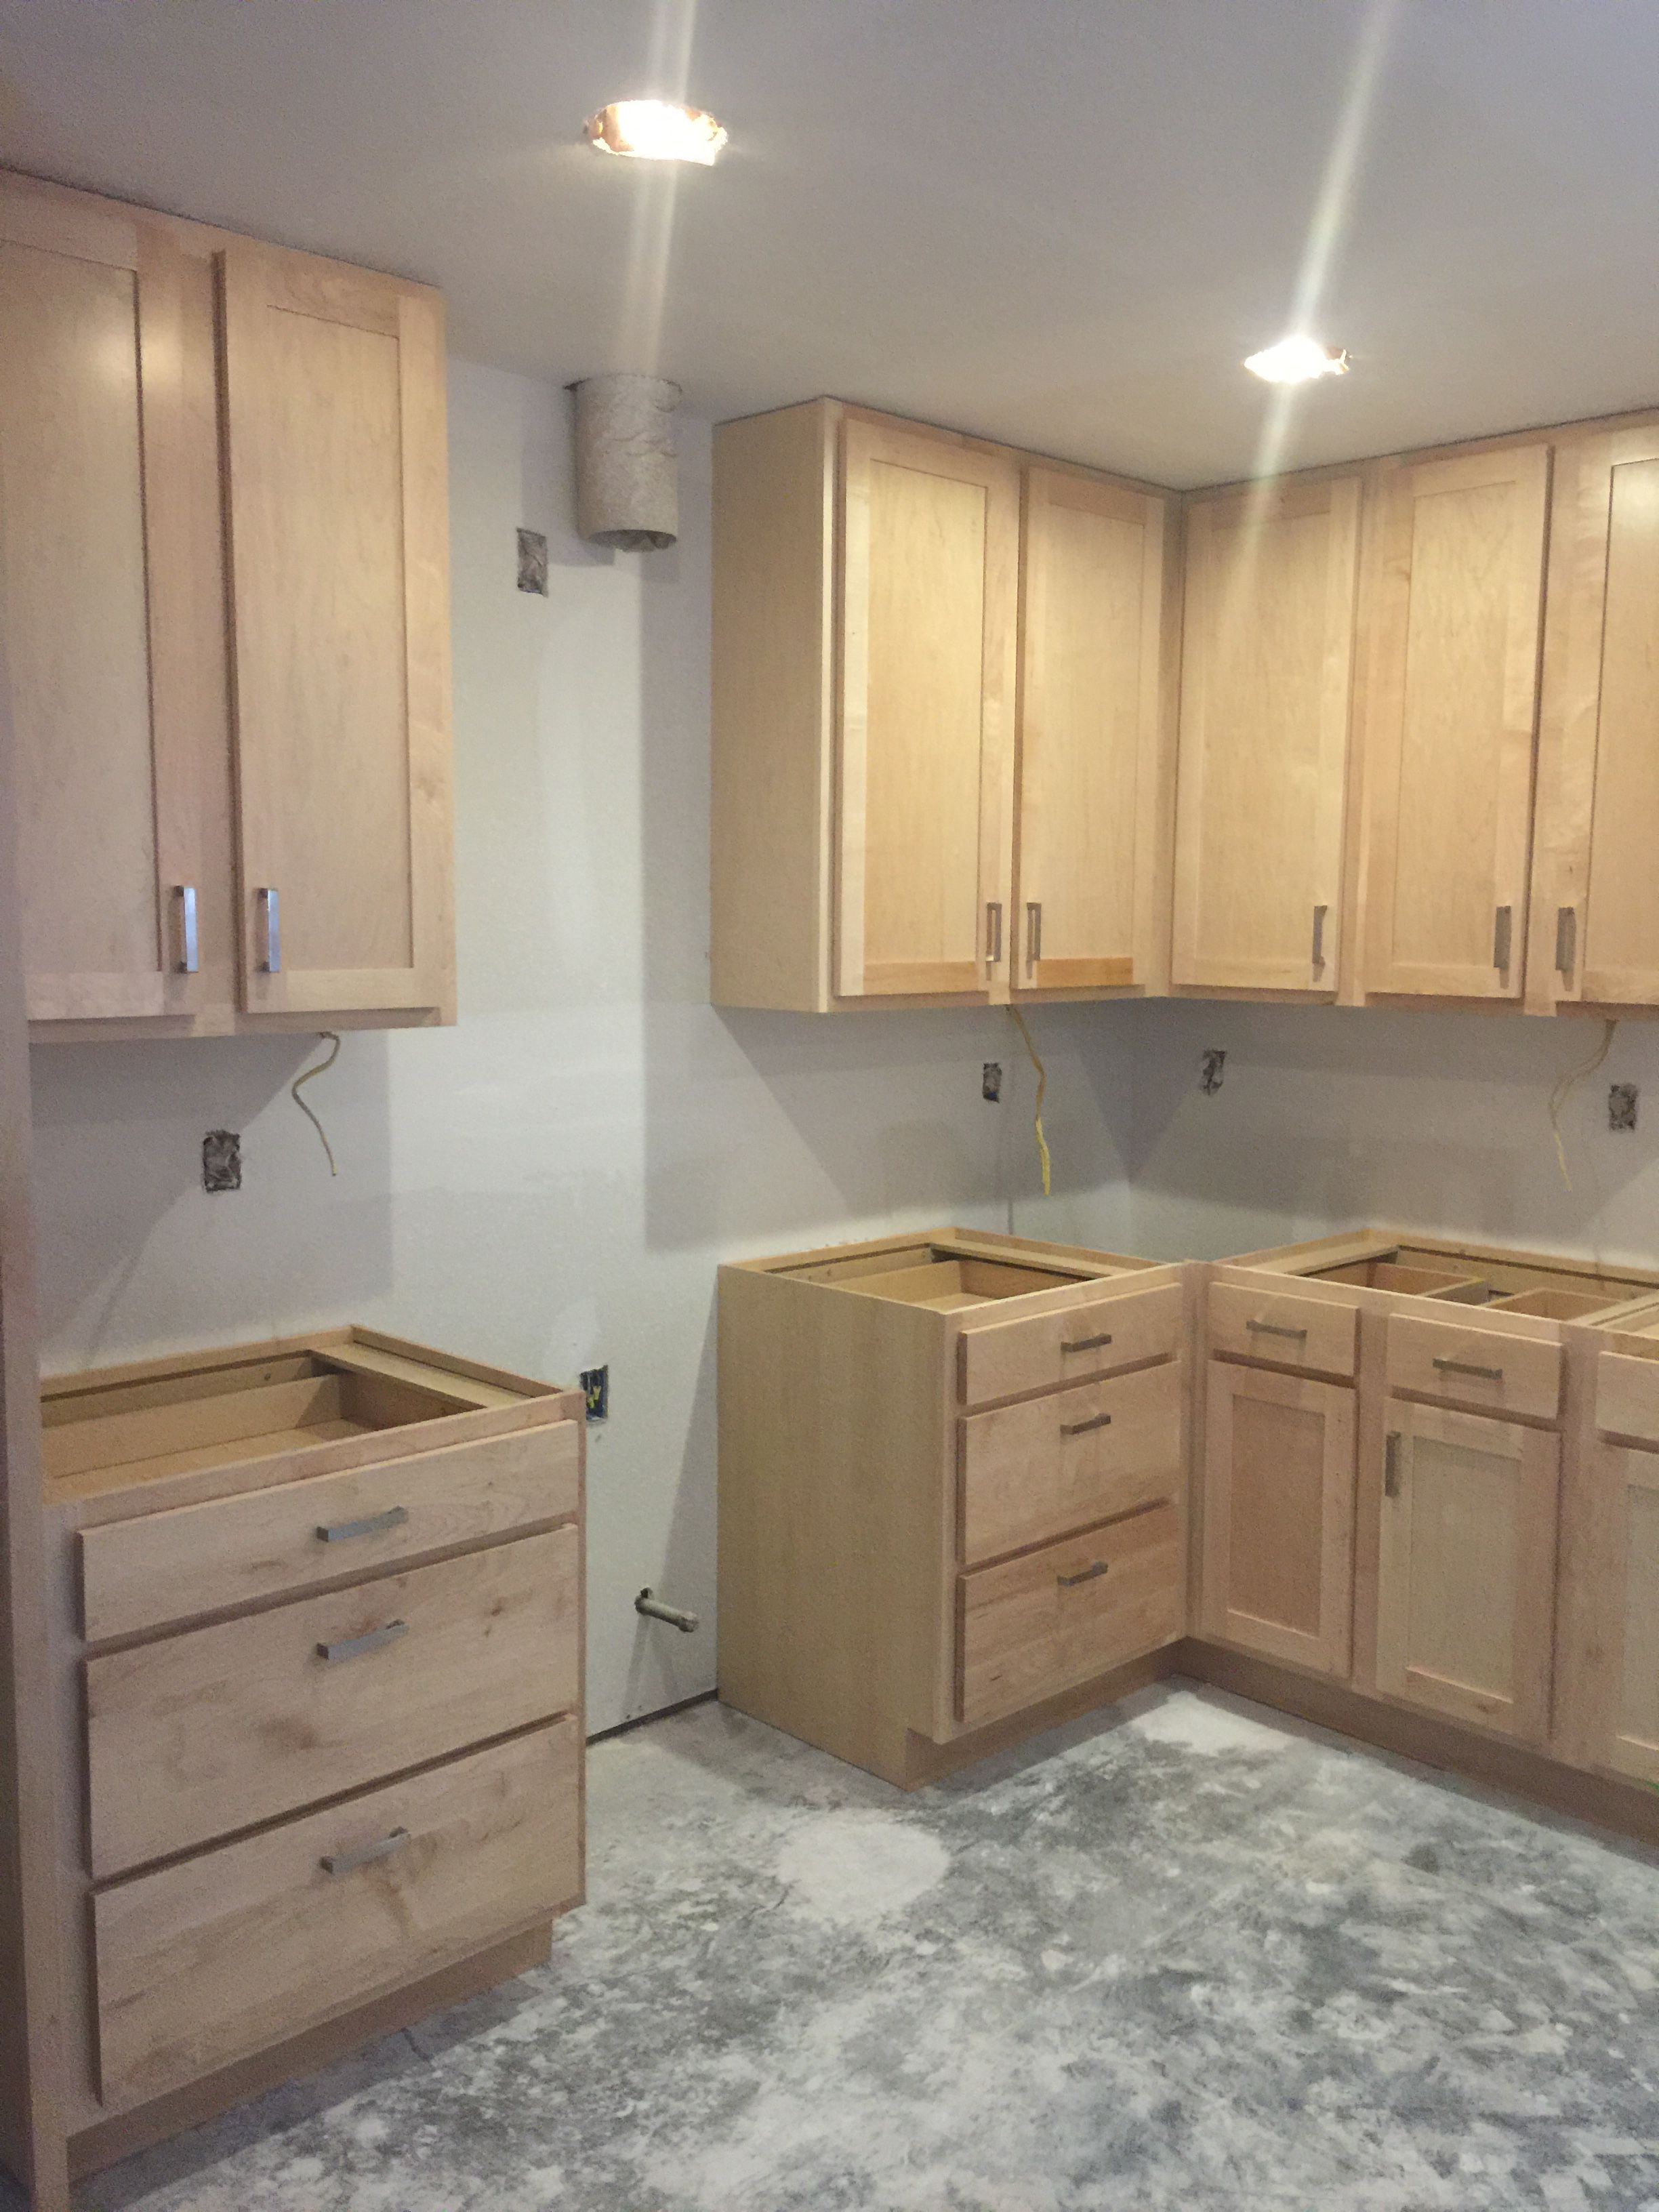 Wellborn Cabinets Installed Maple Cabinets With A Natural Finish Wellborn Cabinets Installing Cabinets Maple Cabinets